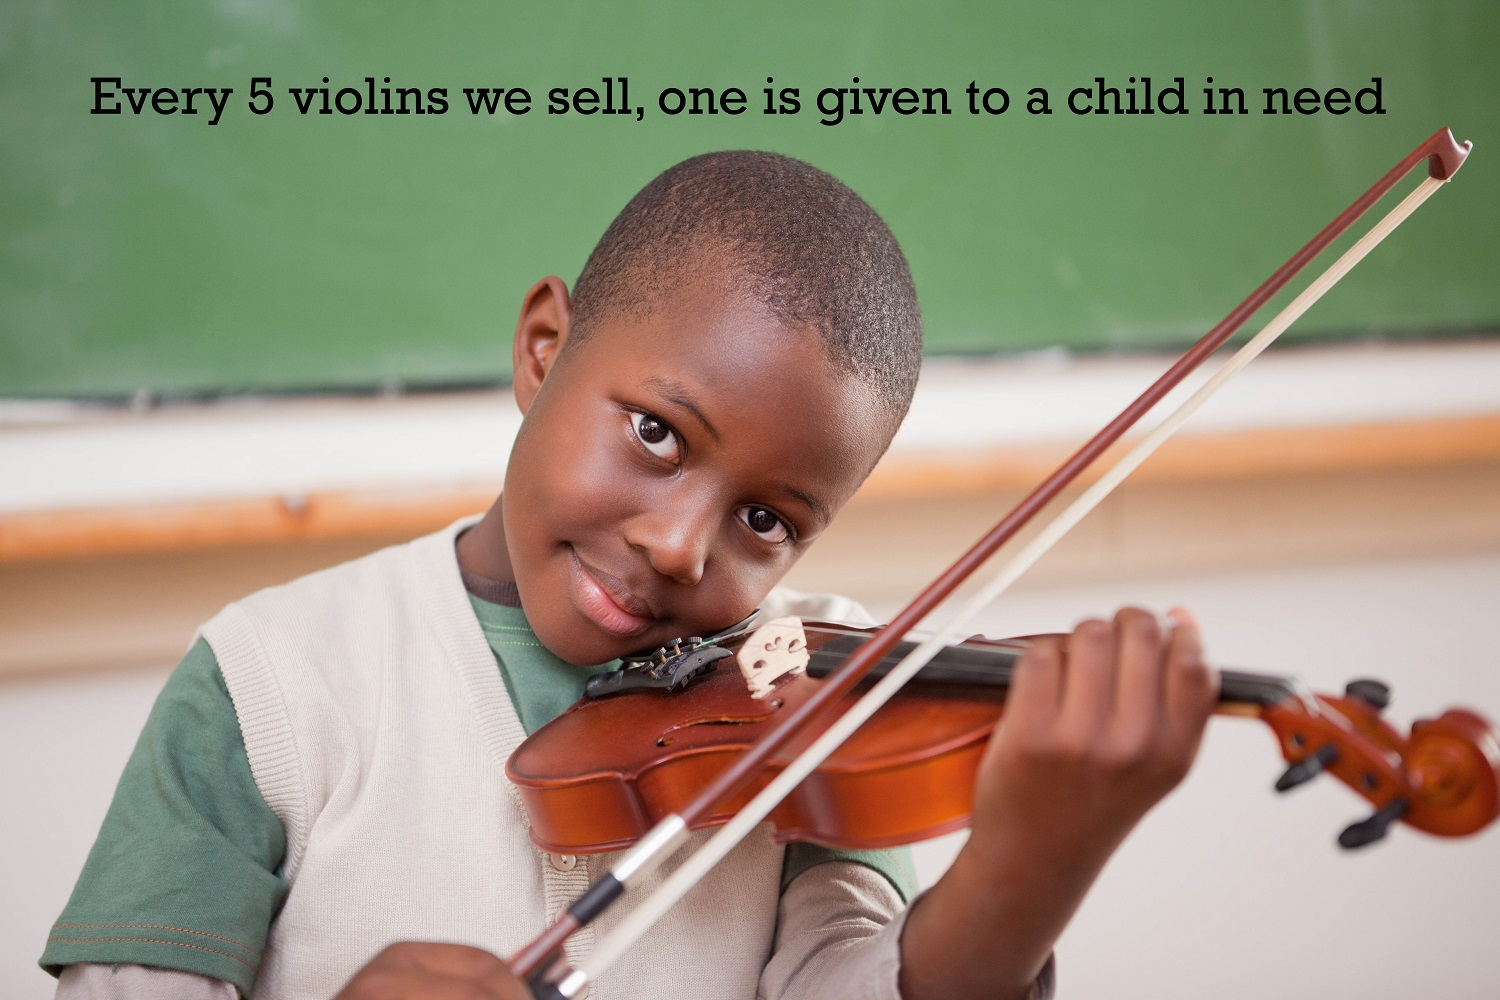 For every 5 violins we sell, one is given to a child in need.